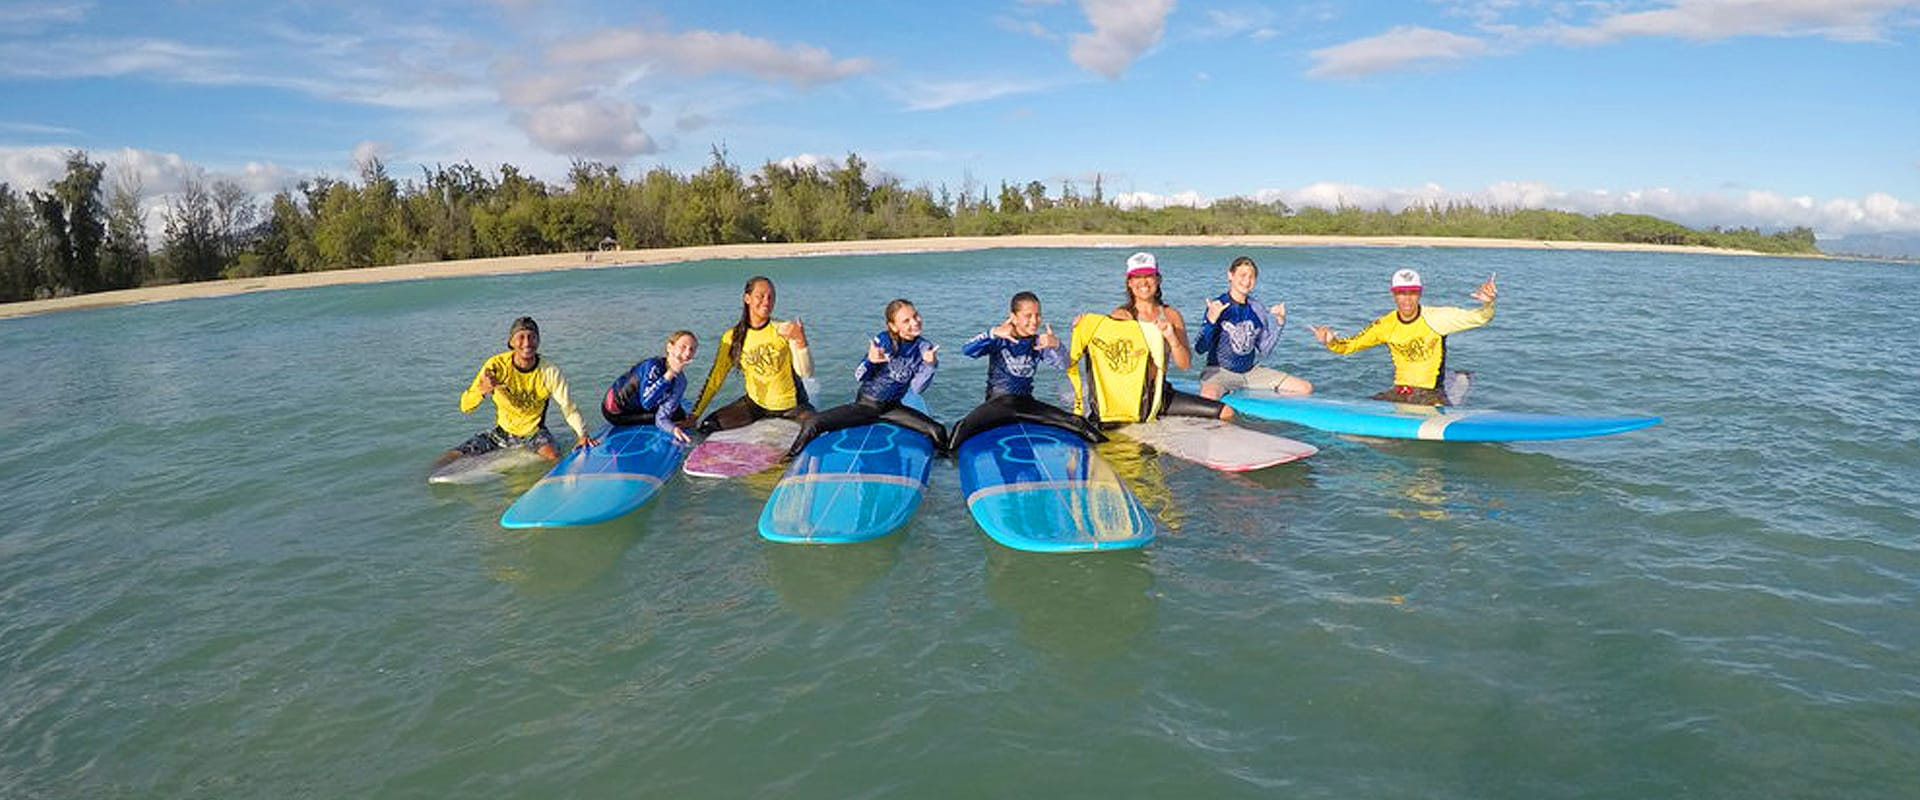 Surf lessons and tips for beginners and family